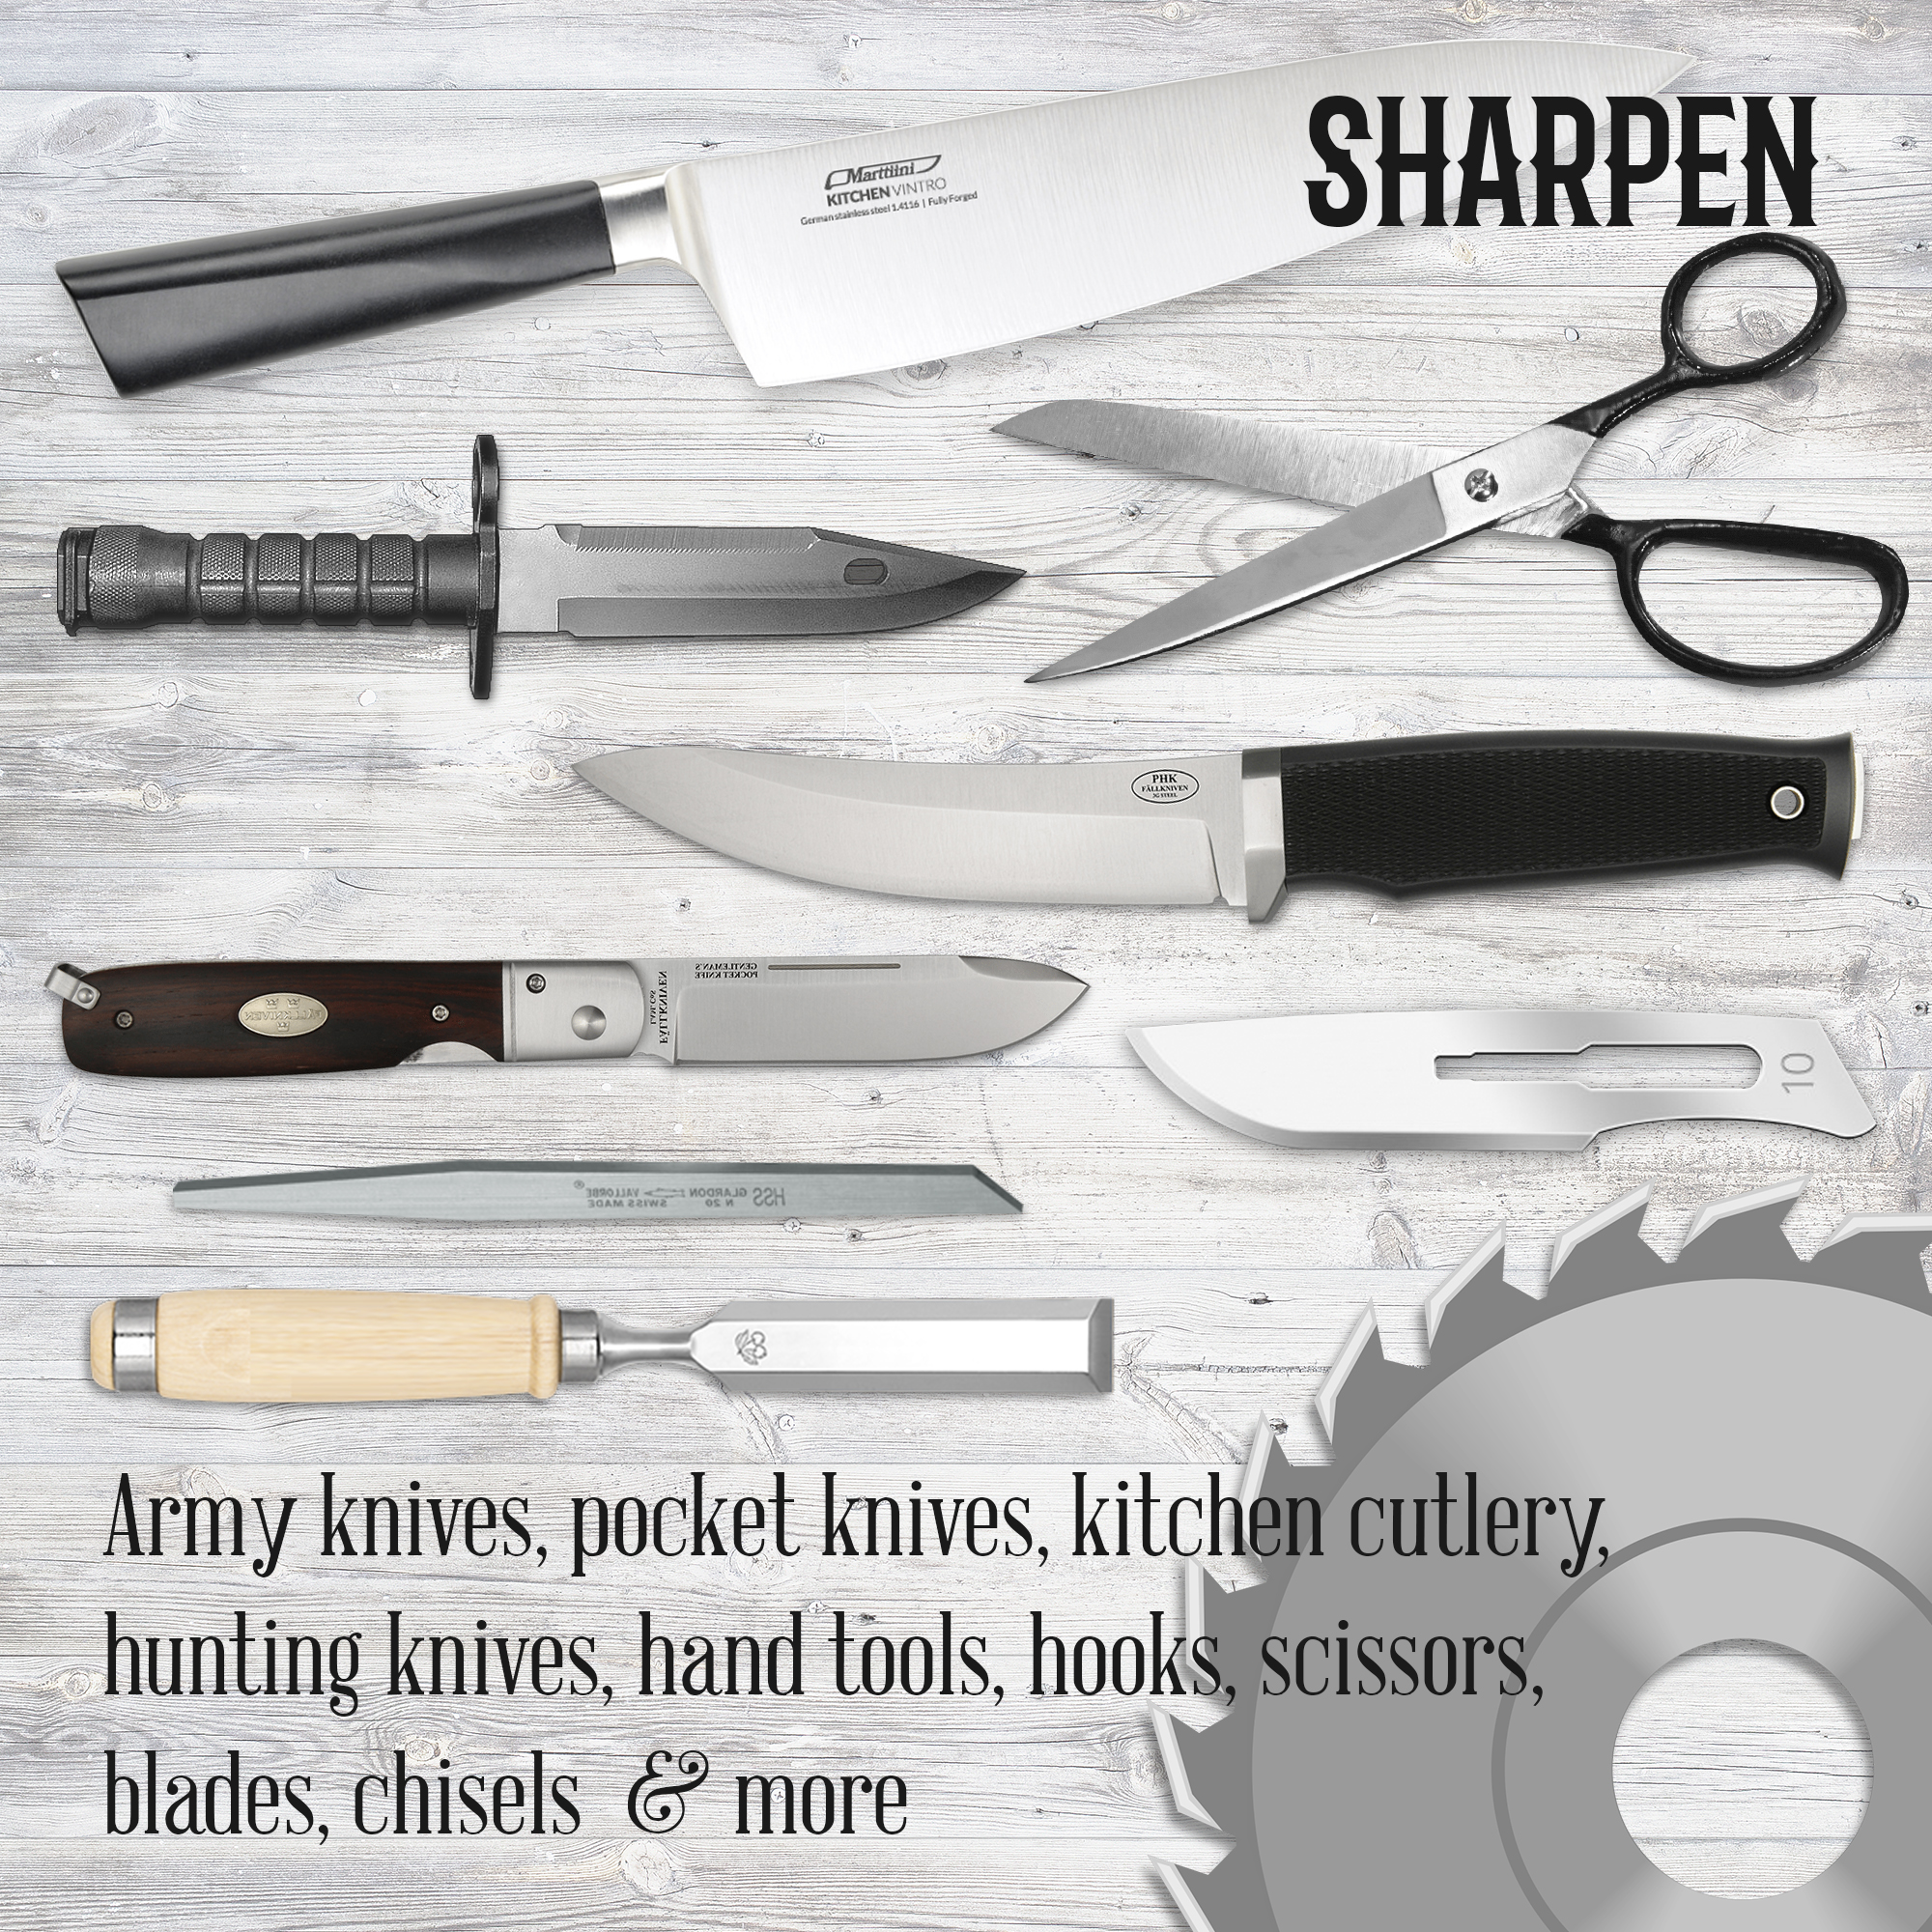 Knife-Straight-Blade-Manual-Sharpener-Tool-Dual-Grit-Sharpening-Stone thumbnail 11